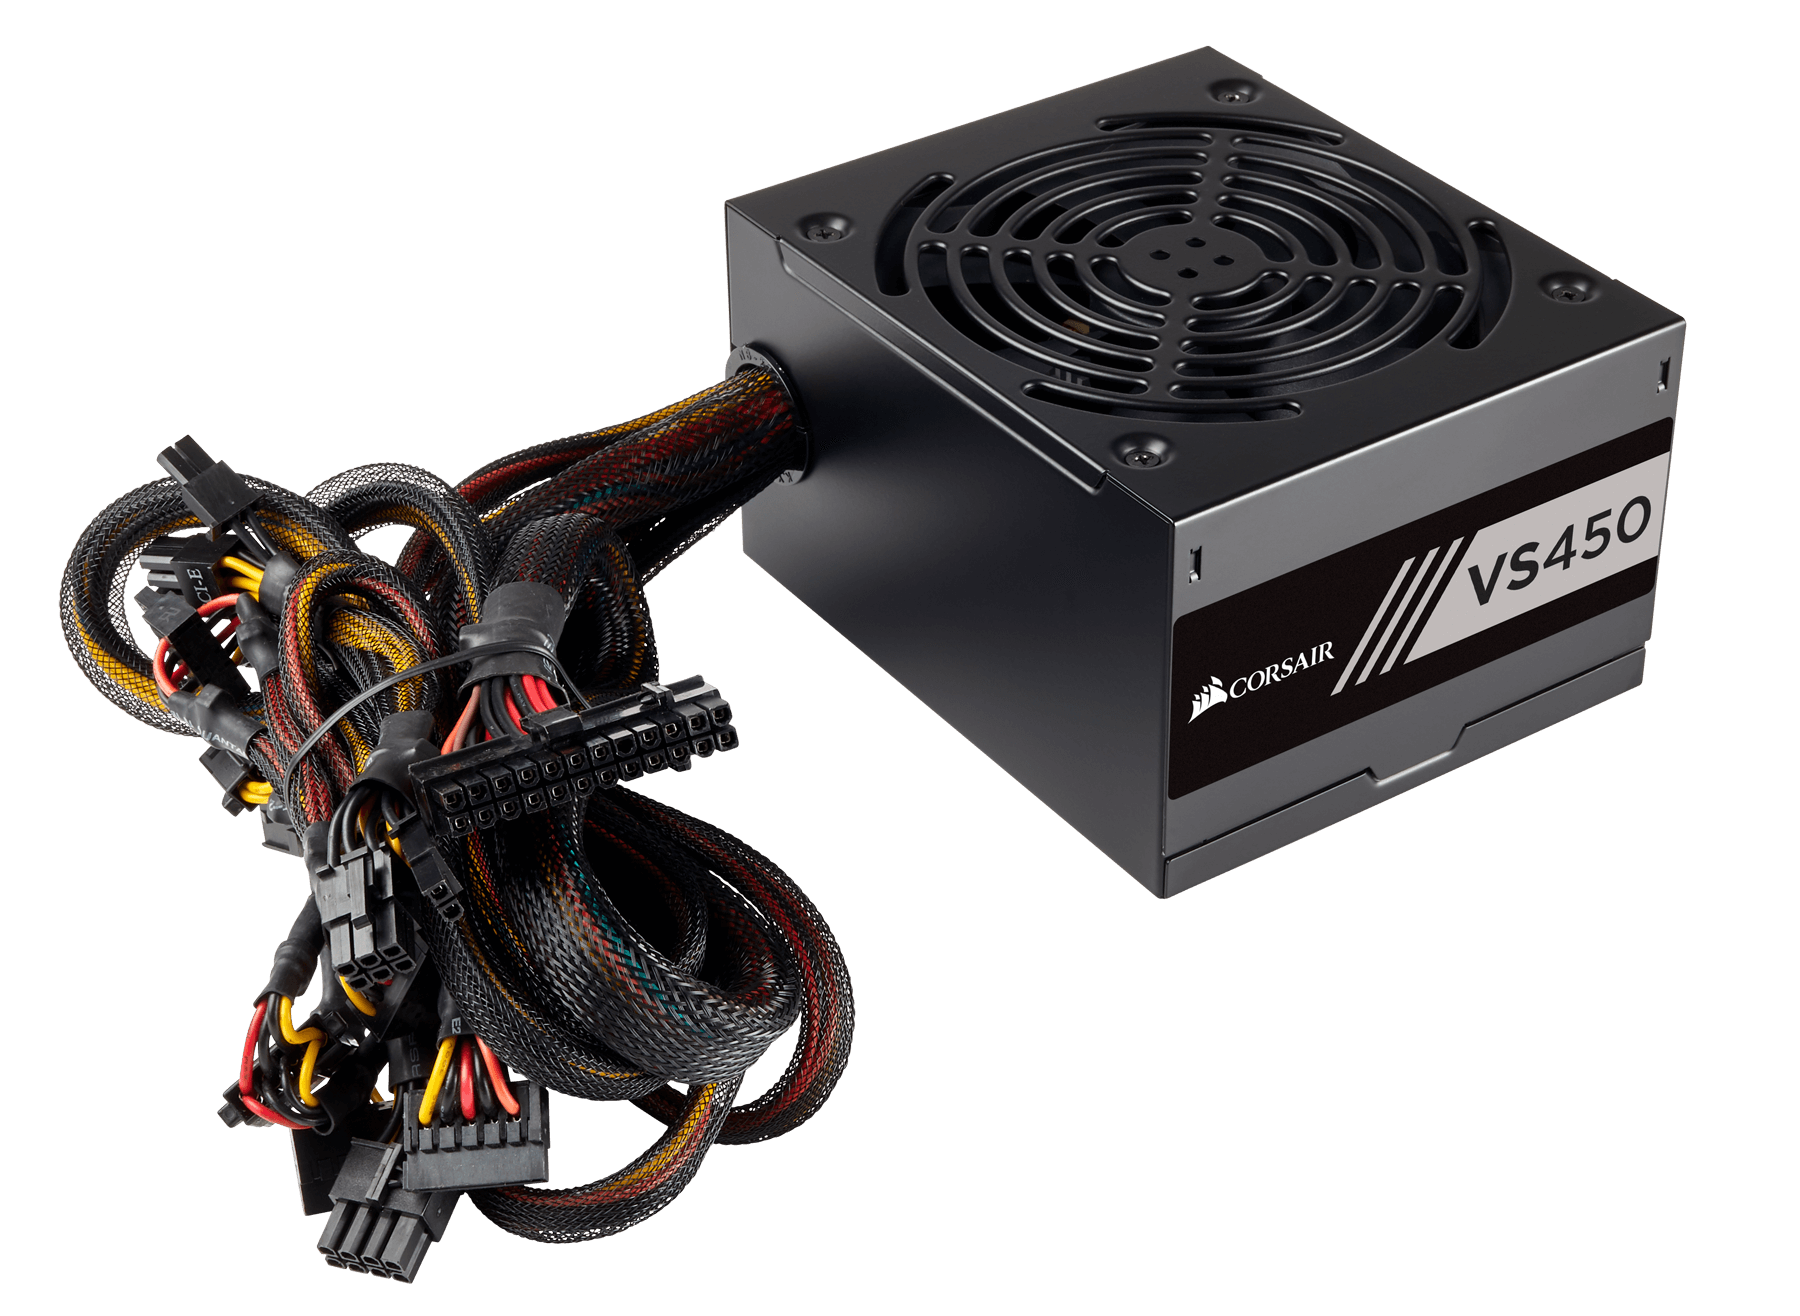 Vs Series Vs450 450 Watt 80 Plus White Certified Psu Uk W Smps Circuit Diagram Black Cables Cable Sleeving And Connectors Make It Easy To Build A Great Looking Pc While Super Compact 125mm Deep Housing Fits In Almost Any Modern